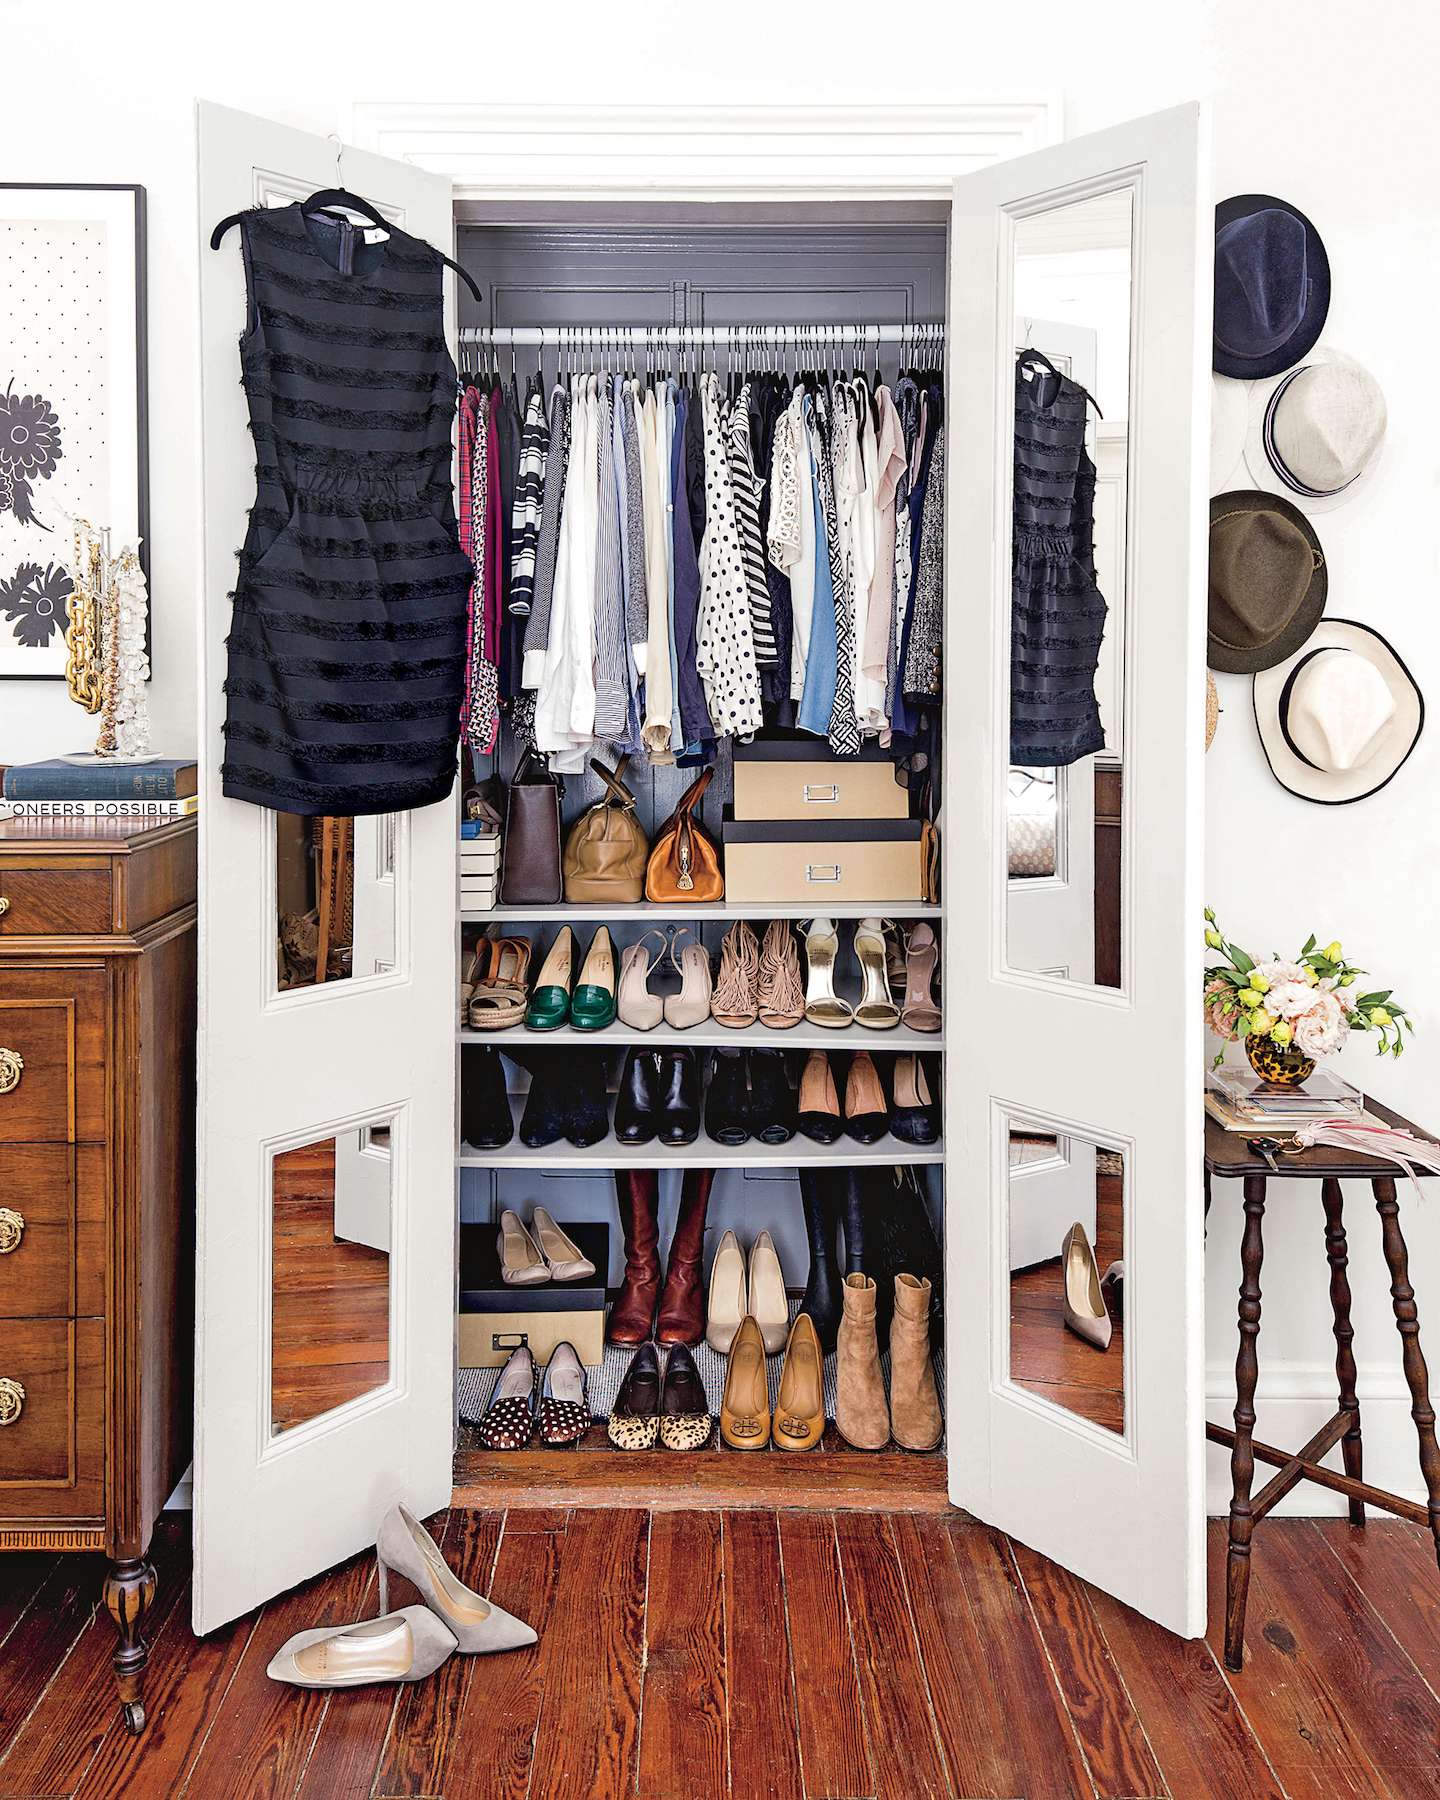 5 Brilliant Organization Ideas to Steal From the Tidiest Closets